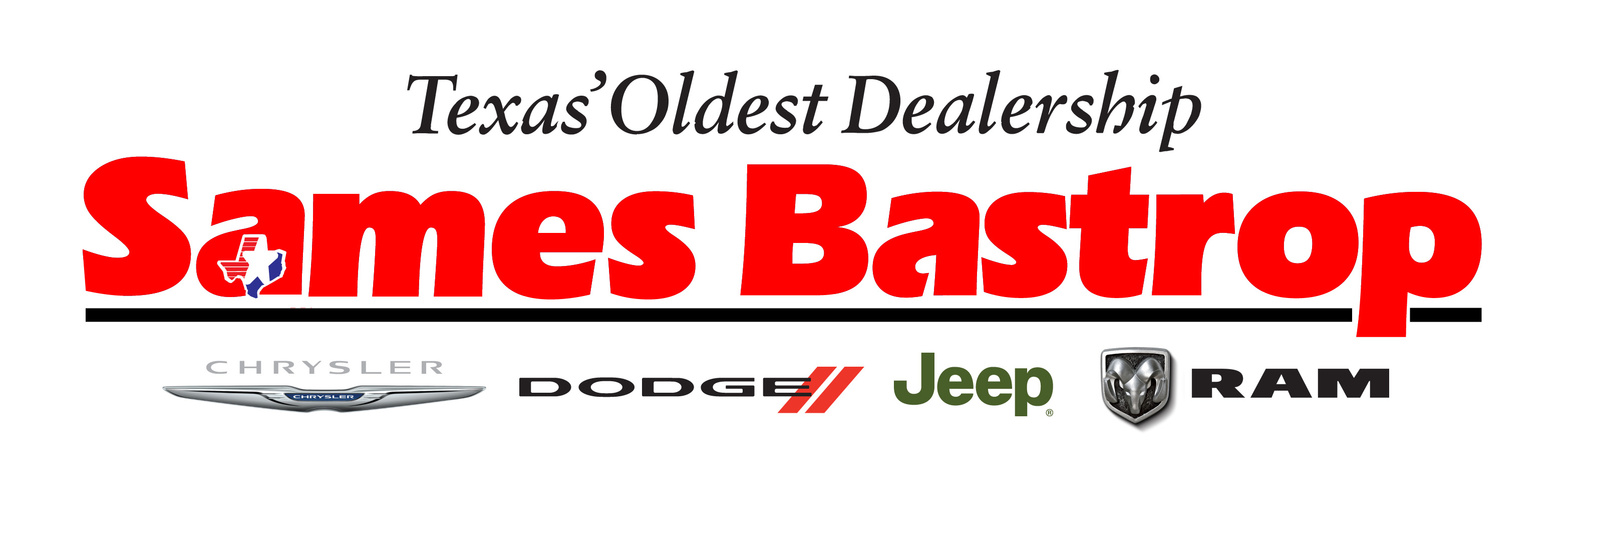 Sames Ford Bastrop >> Sames Bastrop CDJ - Cedar Creek, TX: Read Consumer reviews ...